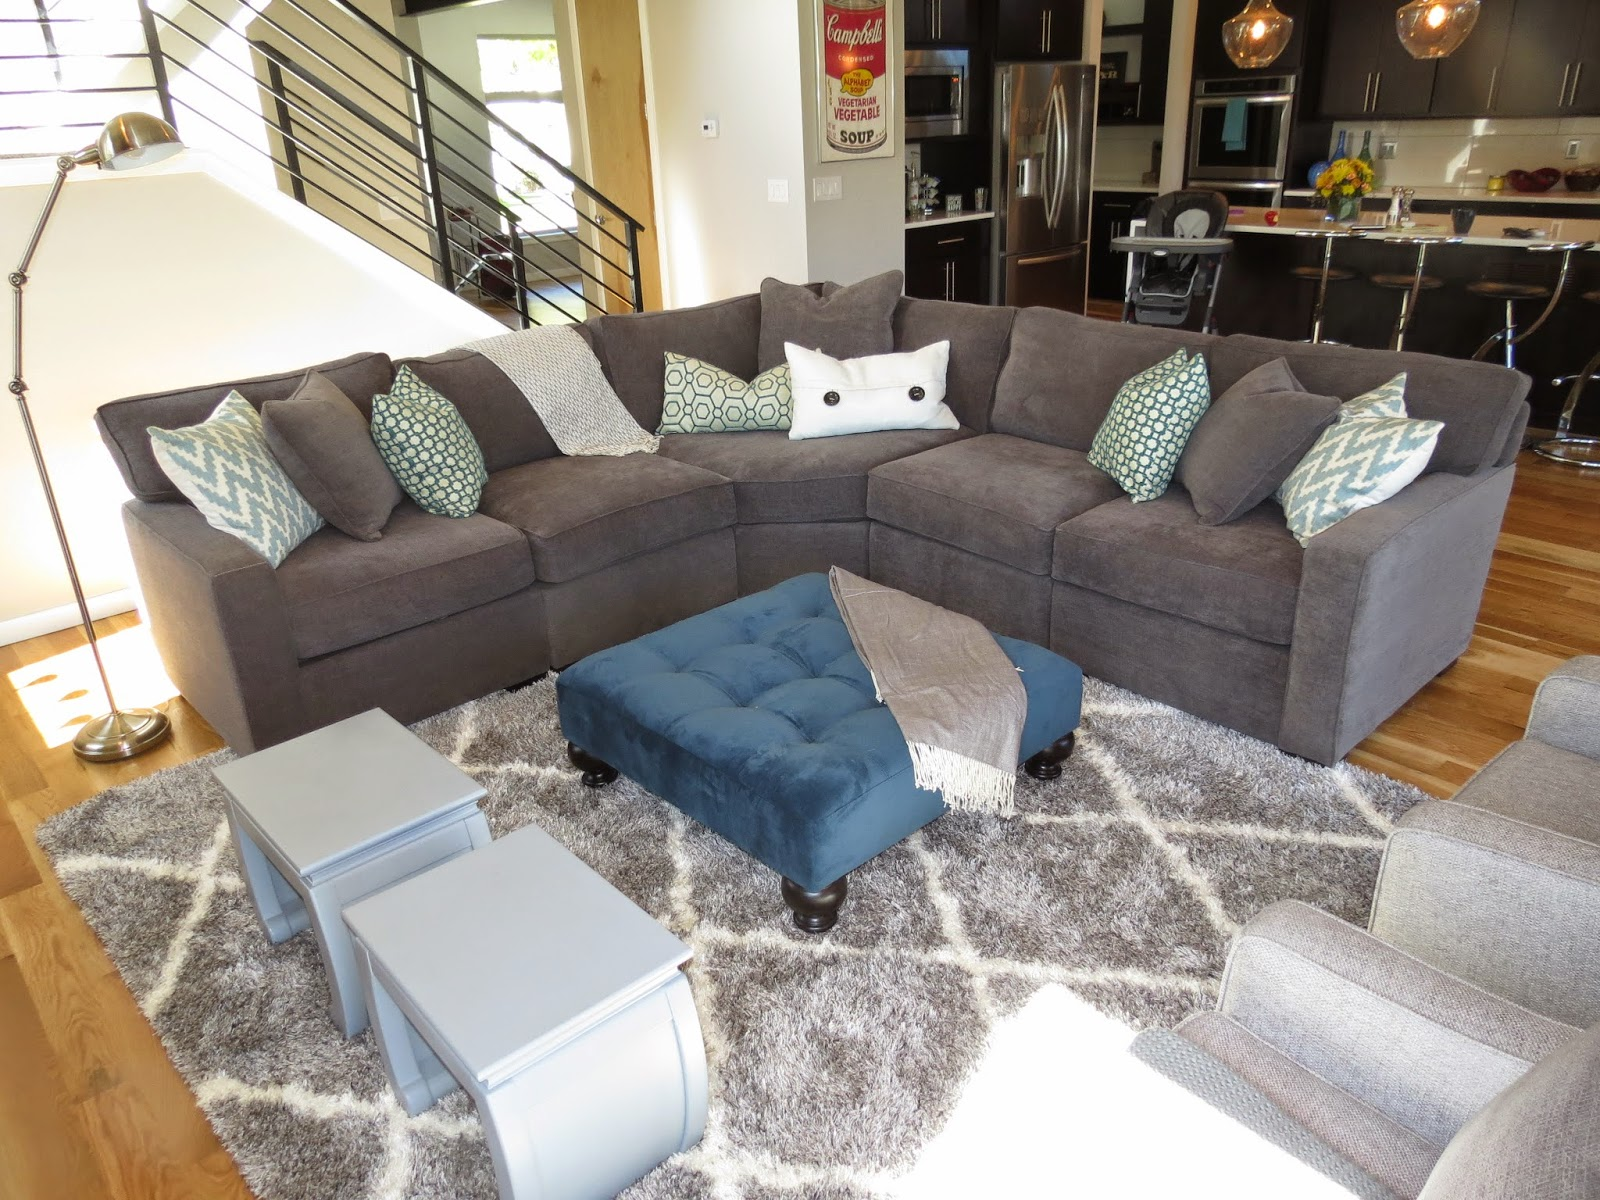 C2design custom furniture living room - What to do with an extra living room ...